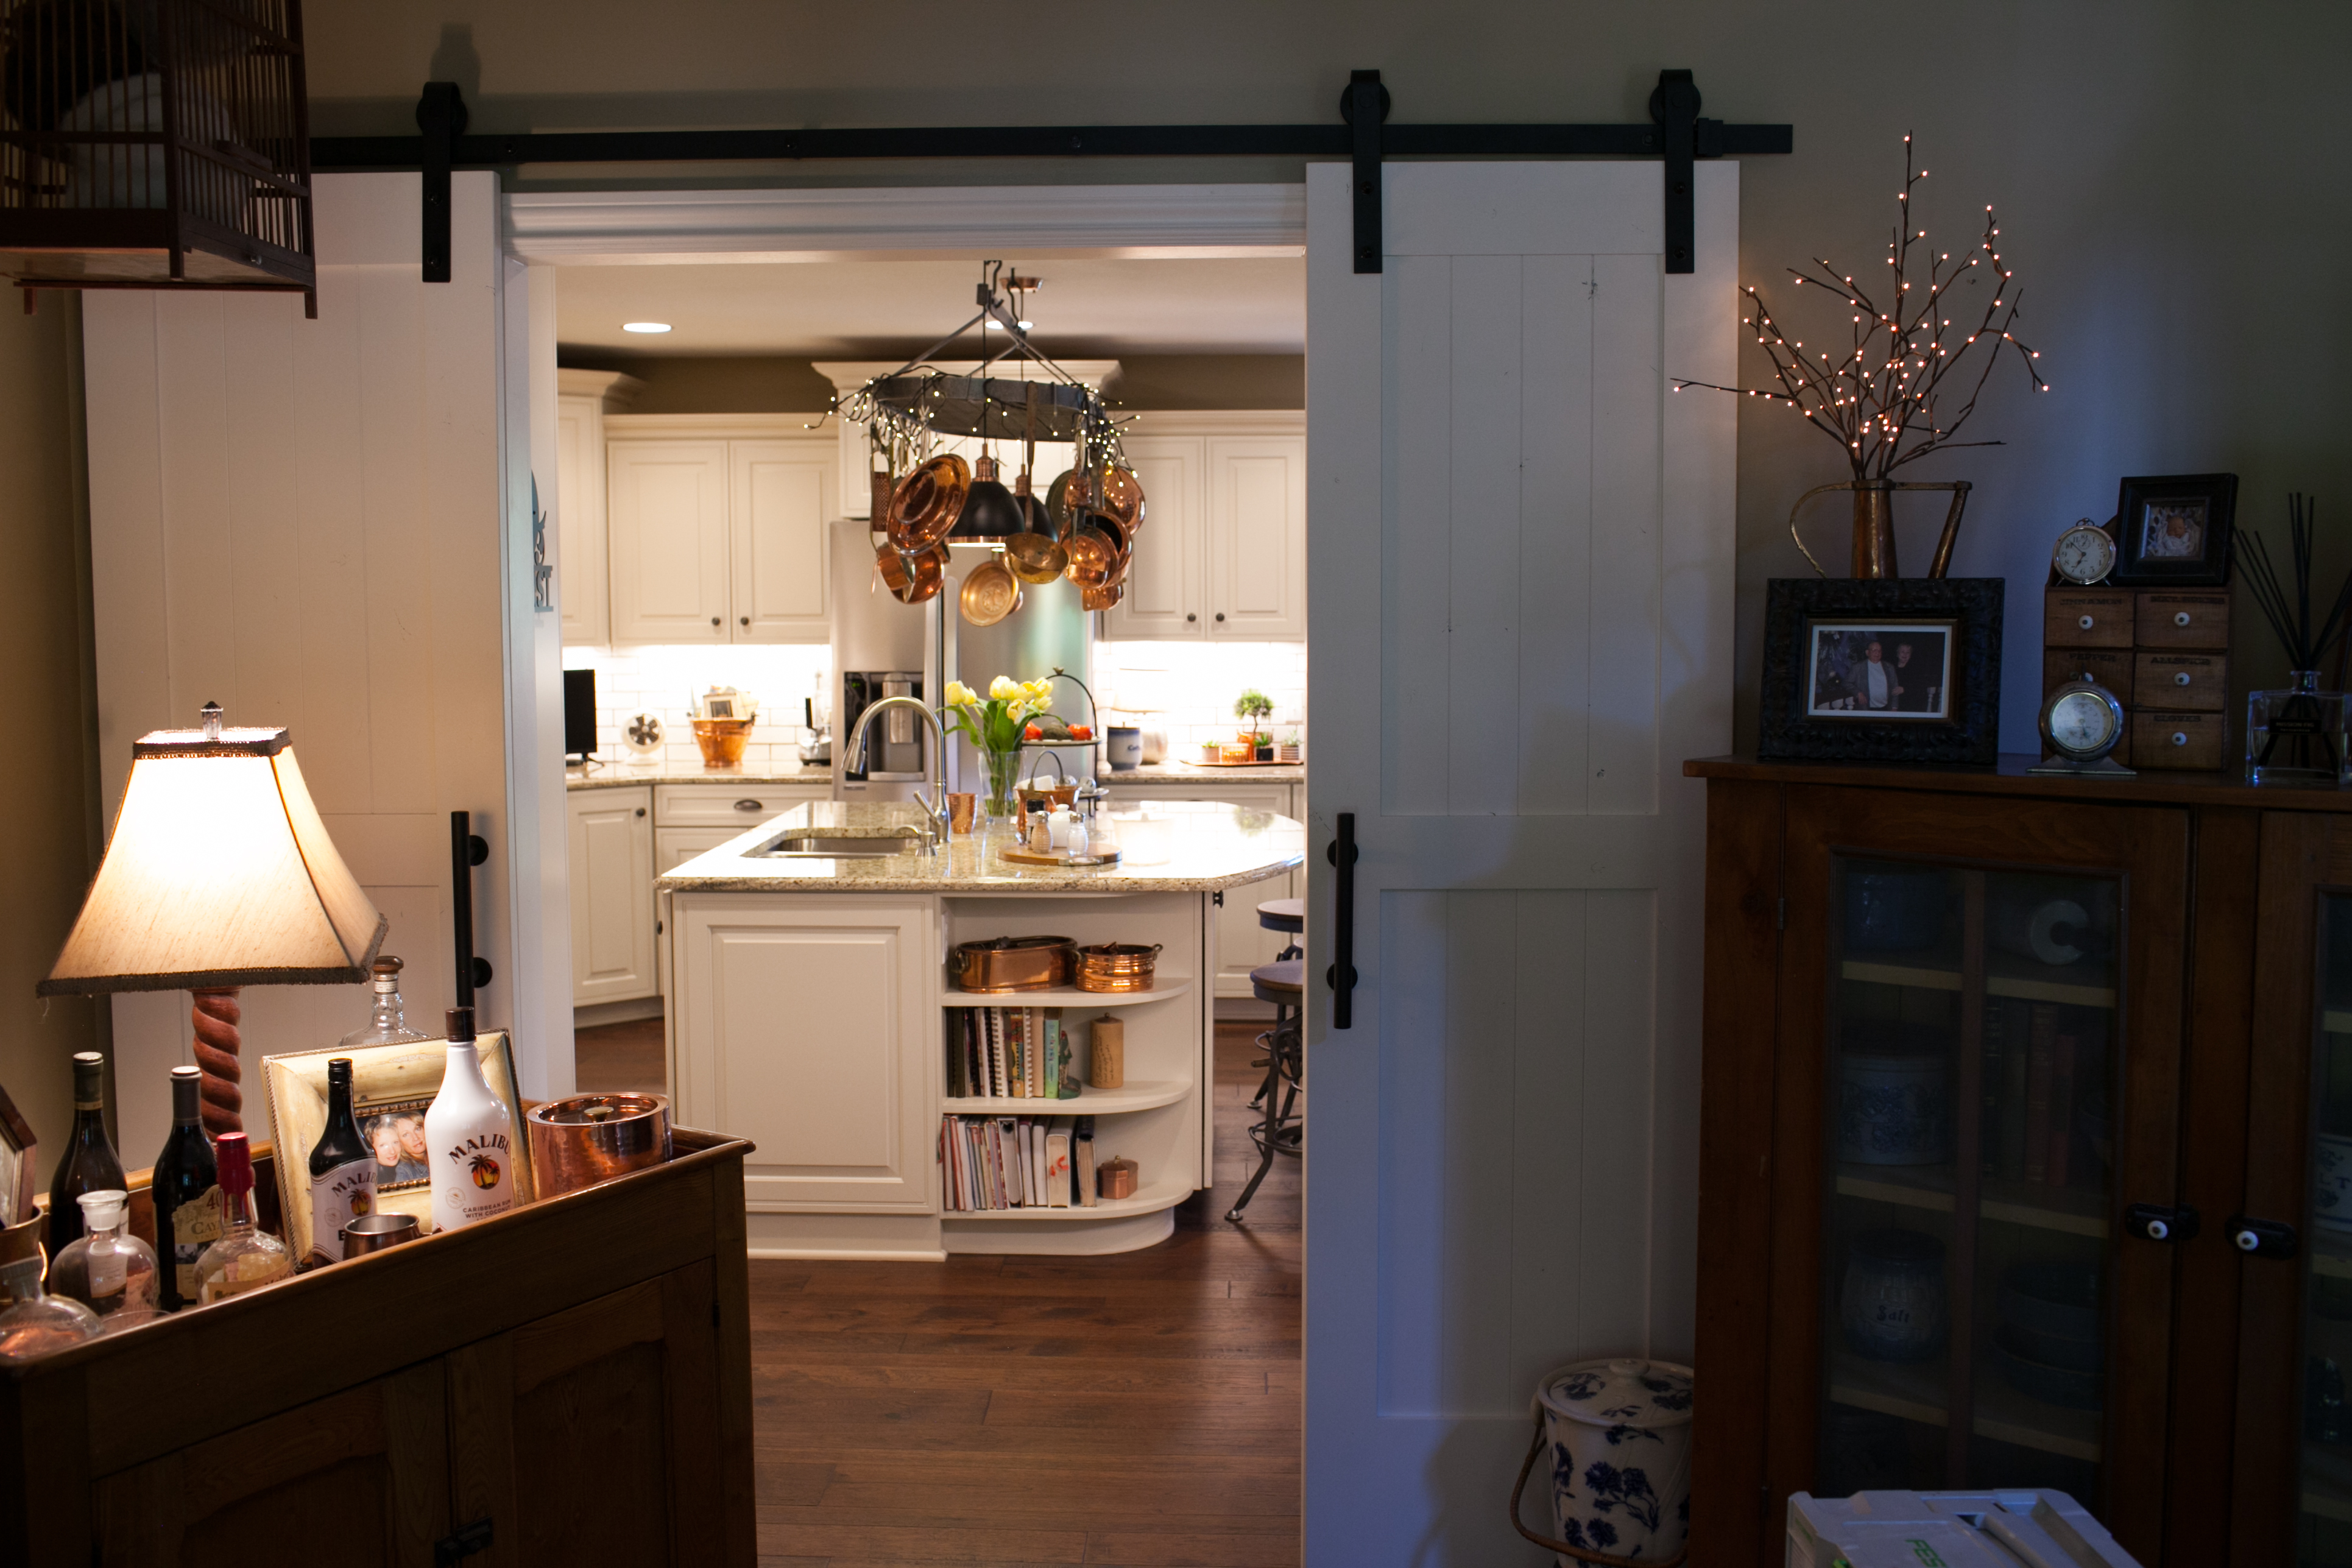 Whole Home Remodel with Barn Doors to Kitchen